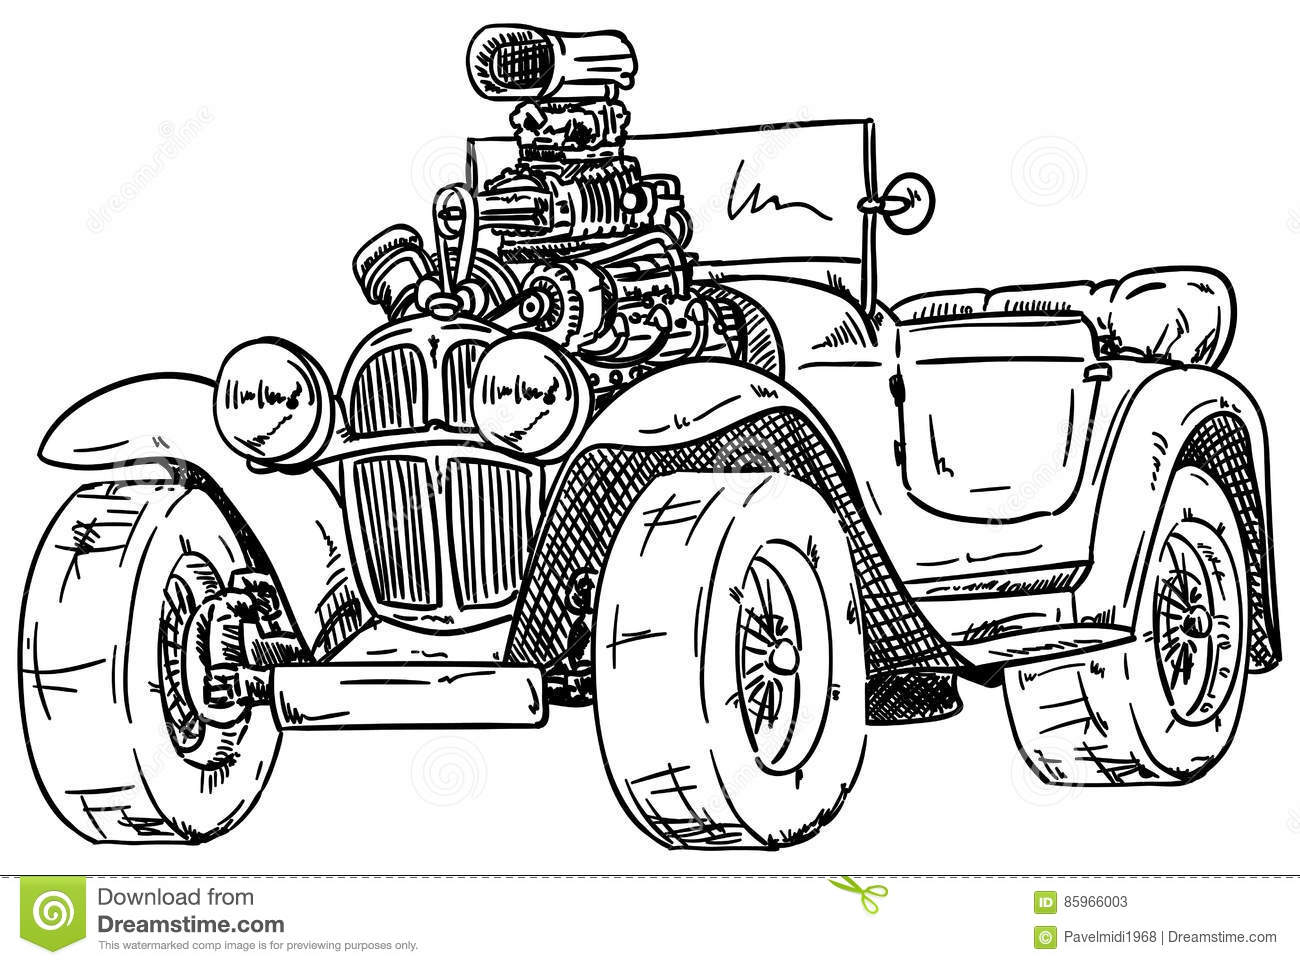 streetrod cartoons  illustrations  u0026 vector stock images